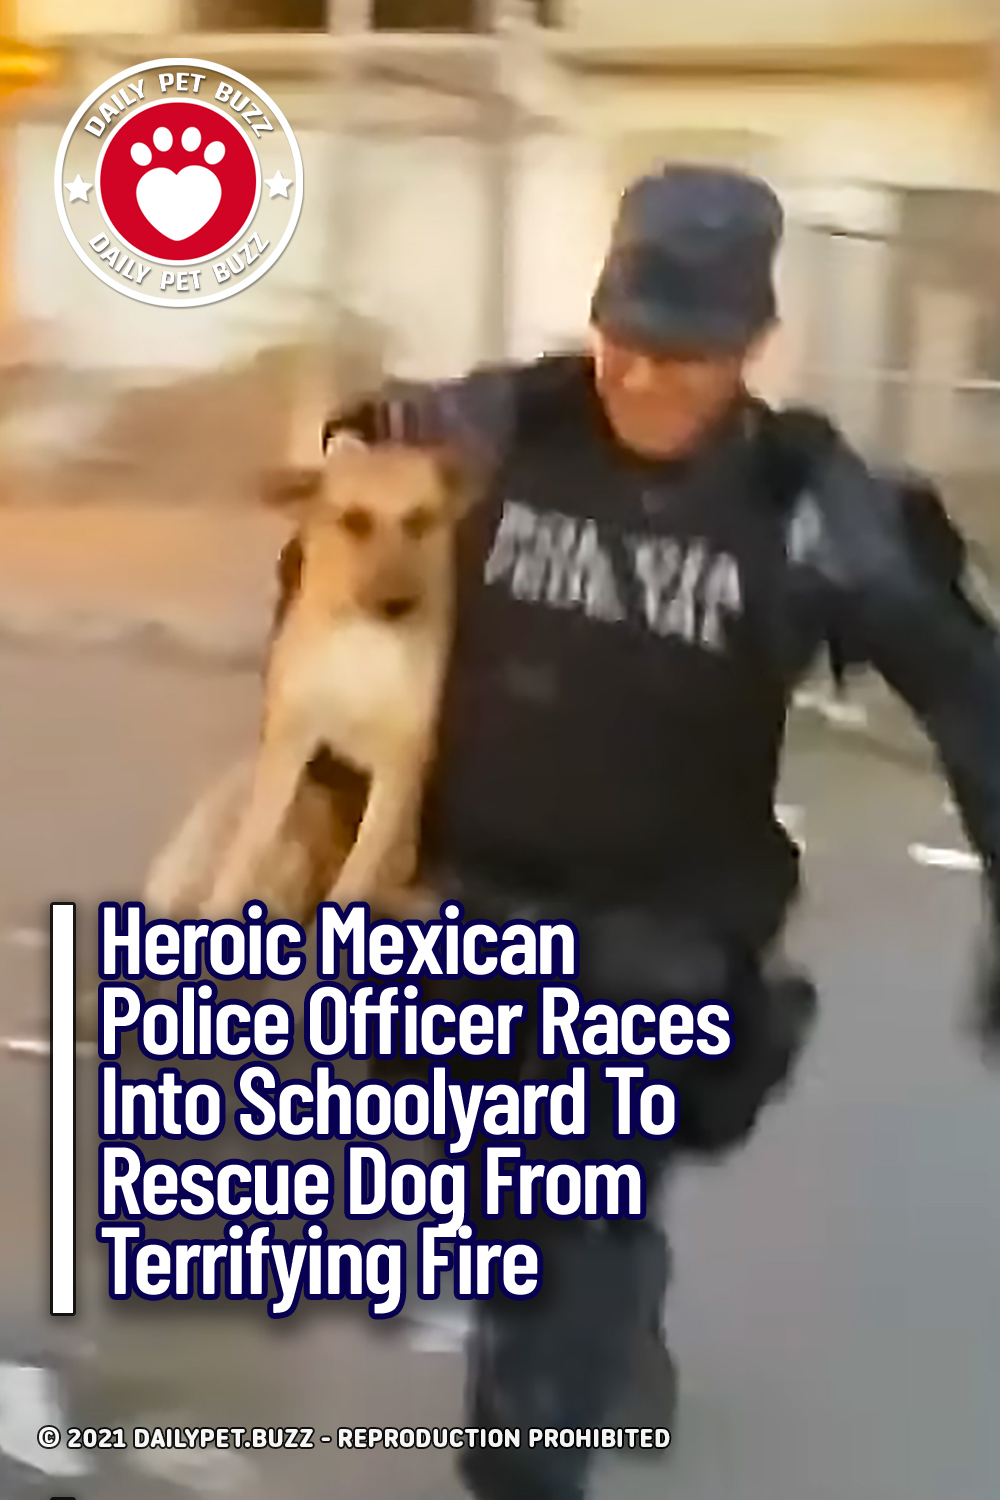 Heroic Mexican Police Officer Races Into Schoolyard To Rescue Dog From Terrifying Fire